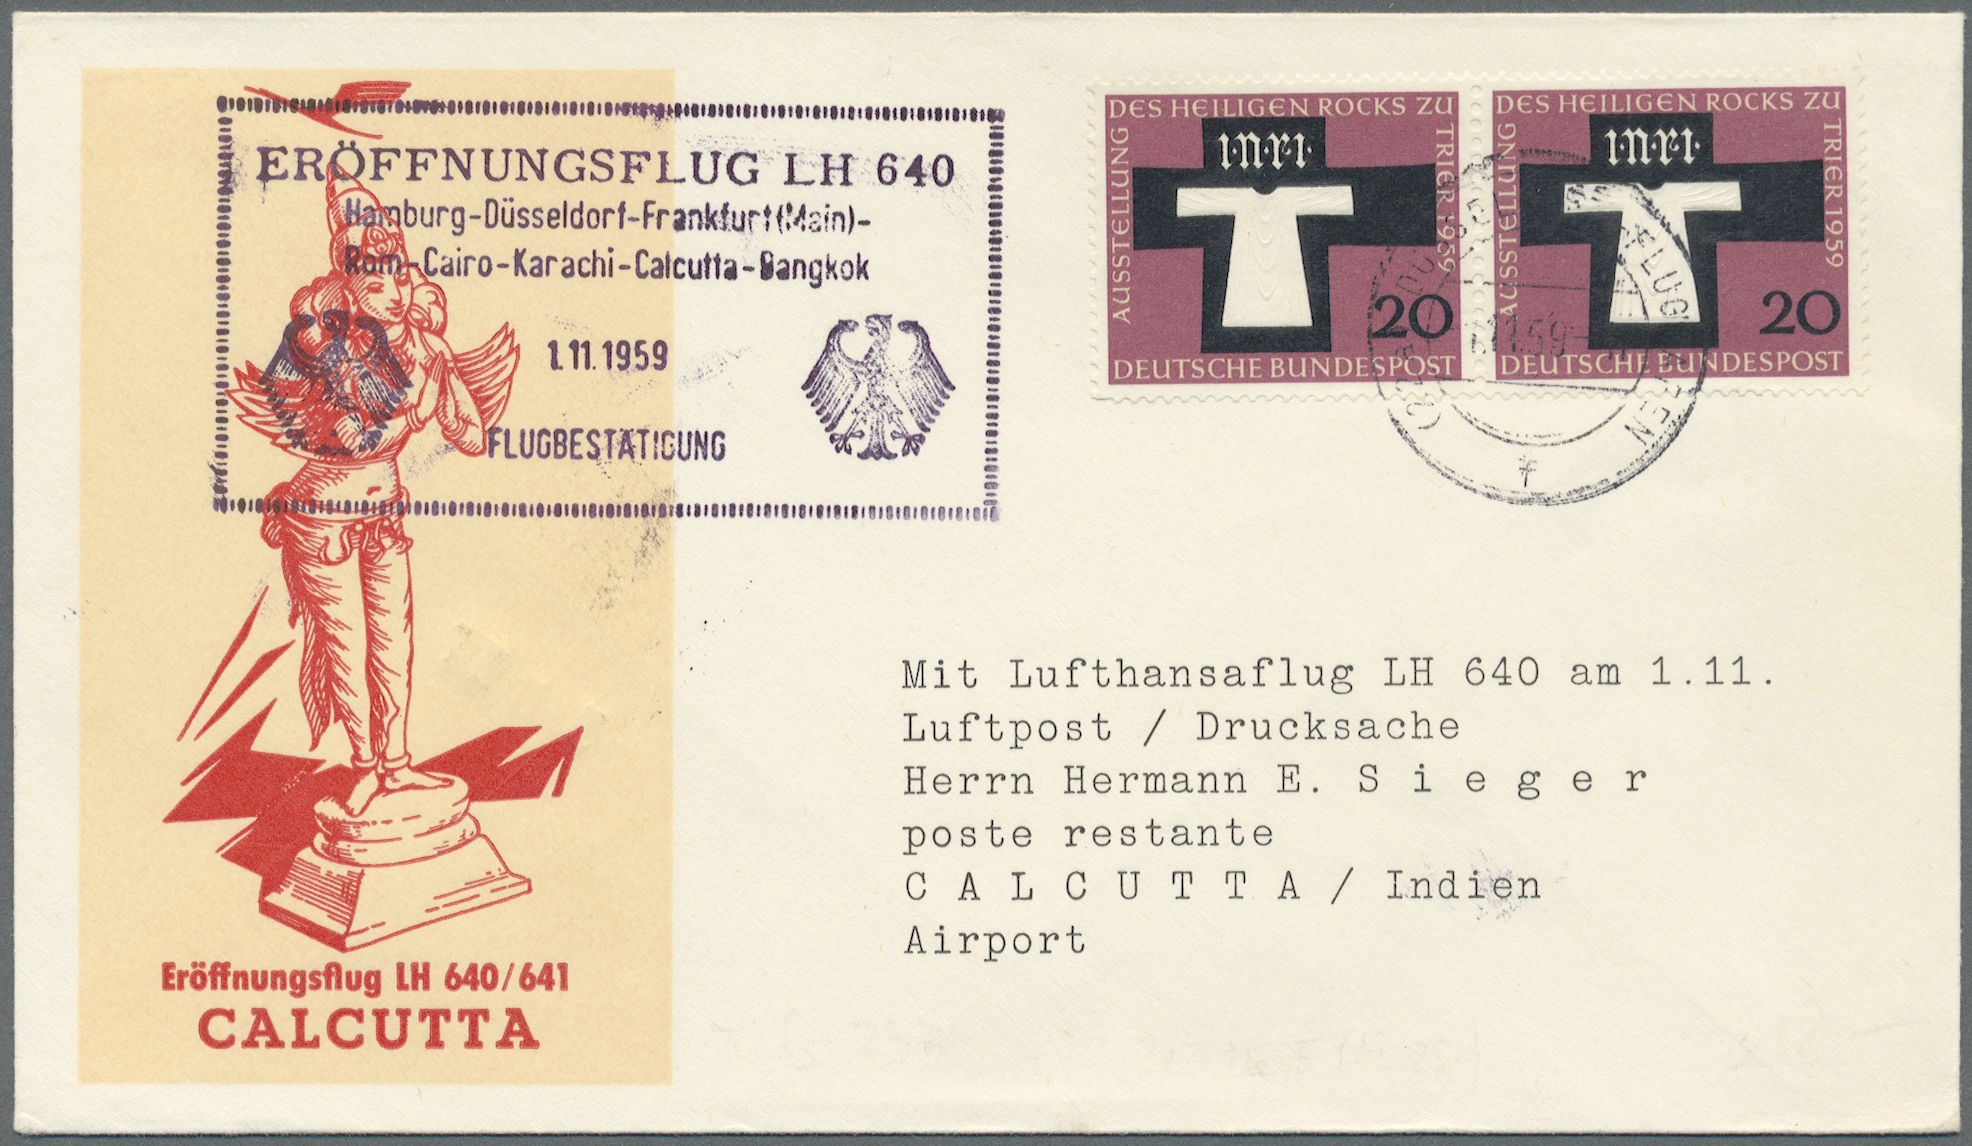 Lot 06213 - Thematik: Flugzeuge, Luftfahrt / airoplanes, aviation  -  Auktionshaus Christoph Gärtner GmbH & Co. KG Special Auction 26.- 28. May 2020 Day 3 Collections - Thematics and Picture Post Cards